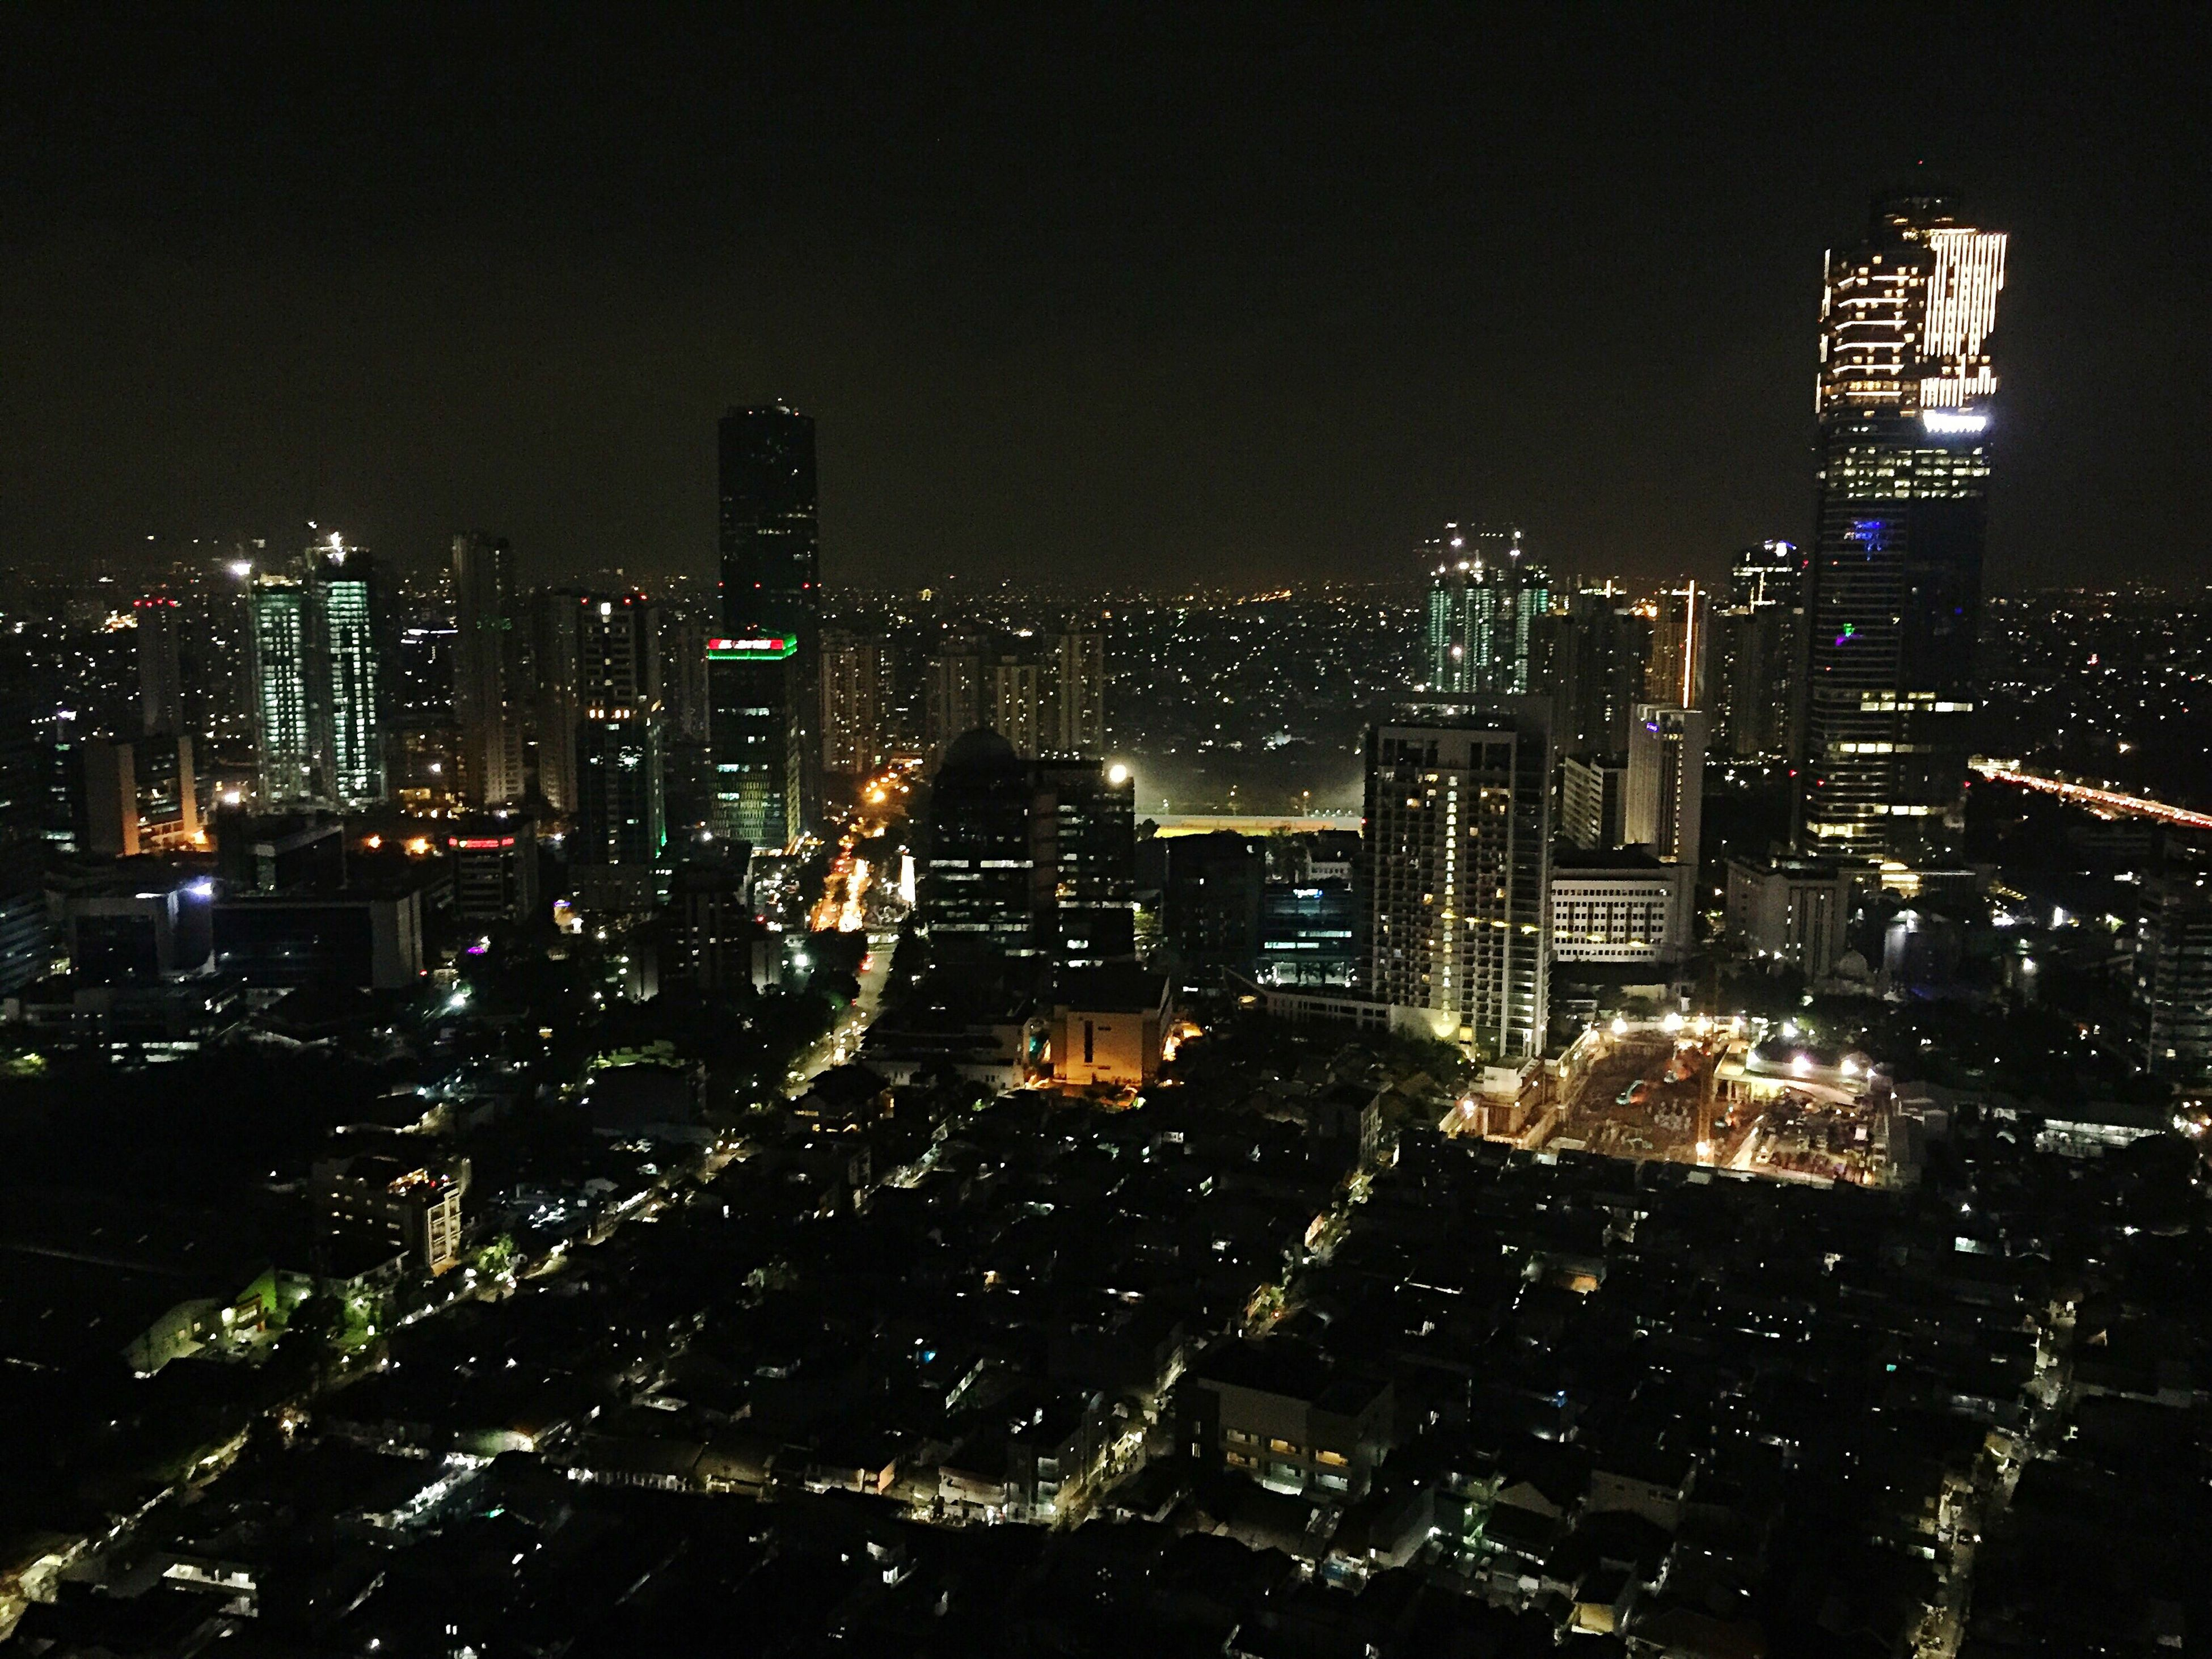 illuminated, cityscape, architecture, skyscraper, night, building exterior, city, modern, growth, built structure, no people, sky, tall, travel destinations, outdoors, clear sky, urban skyline